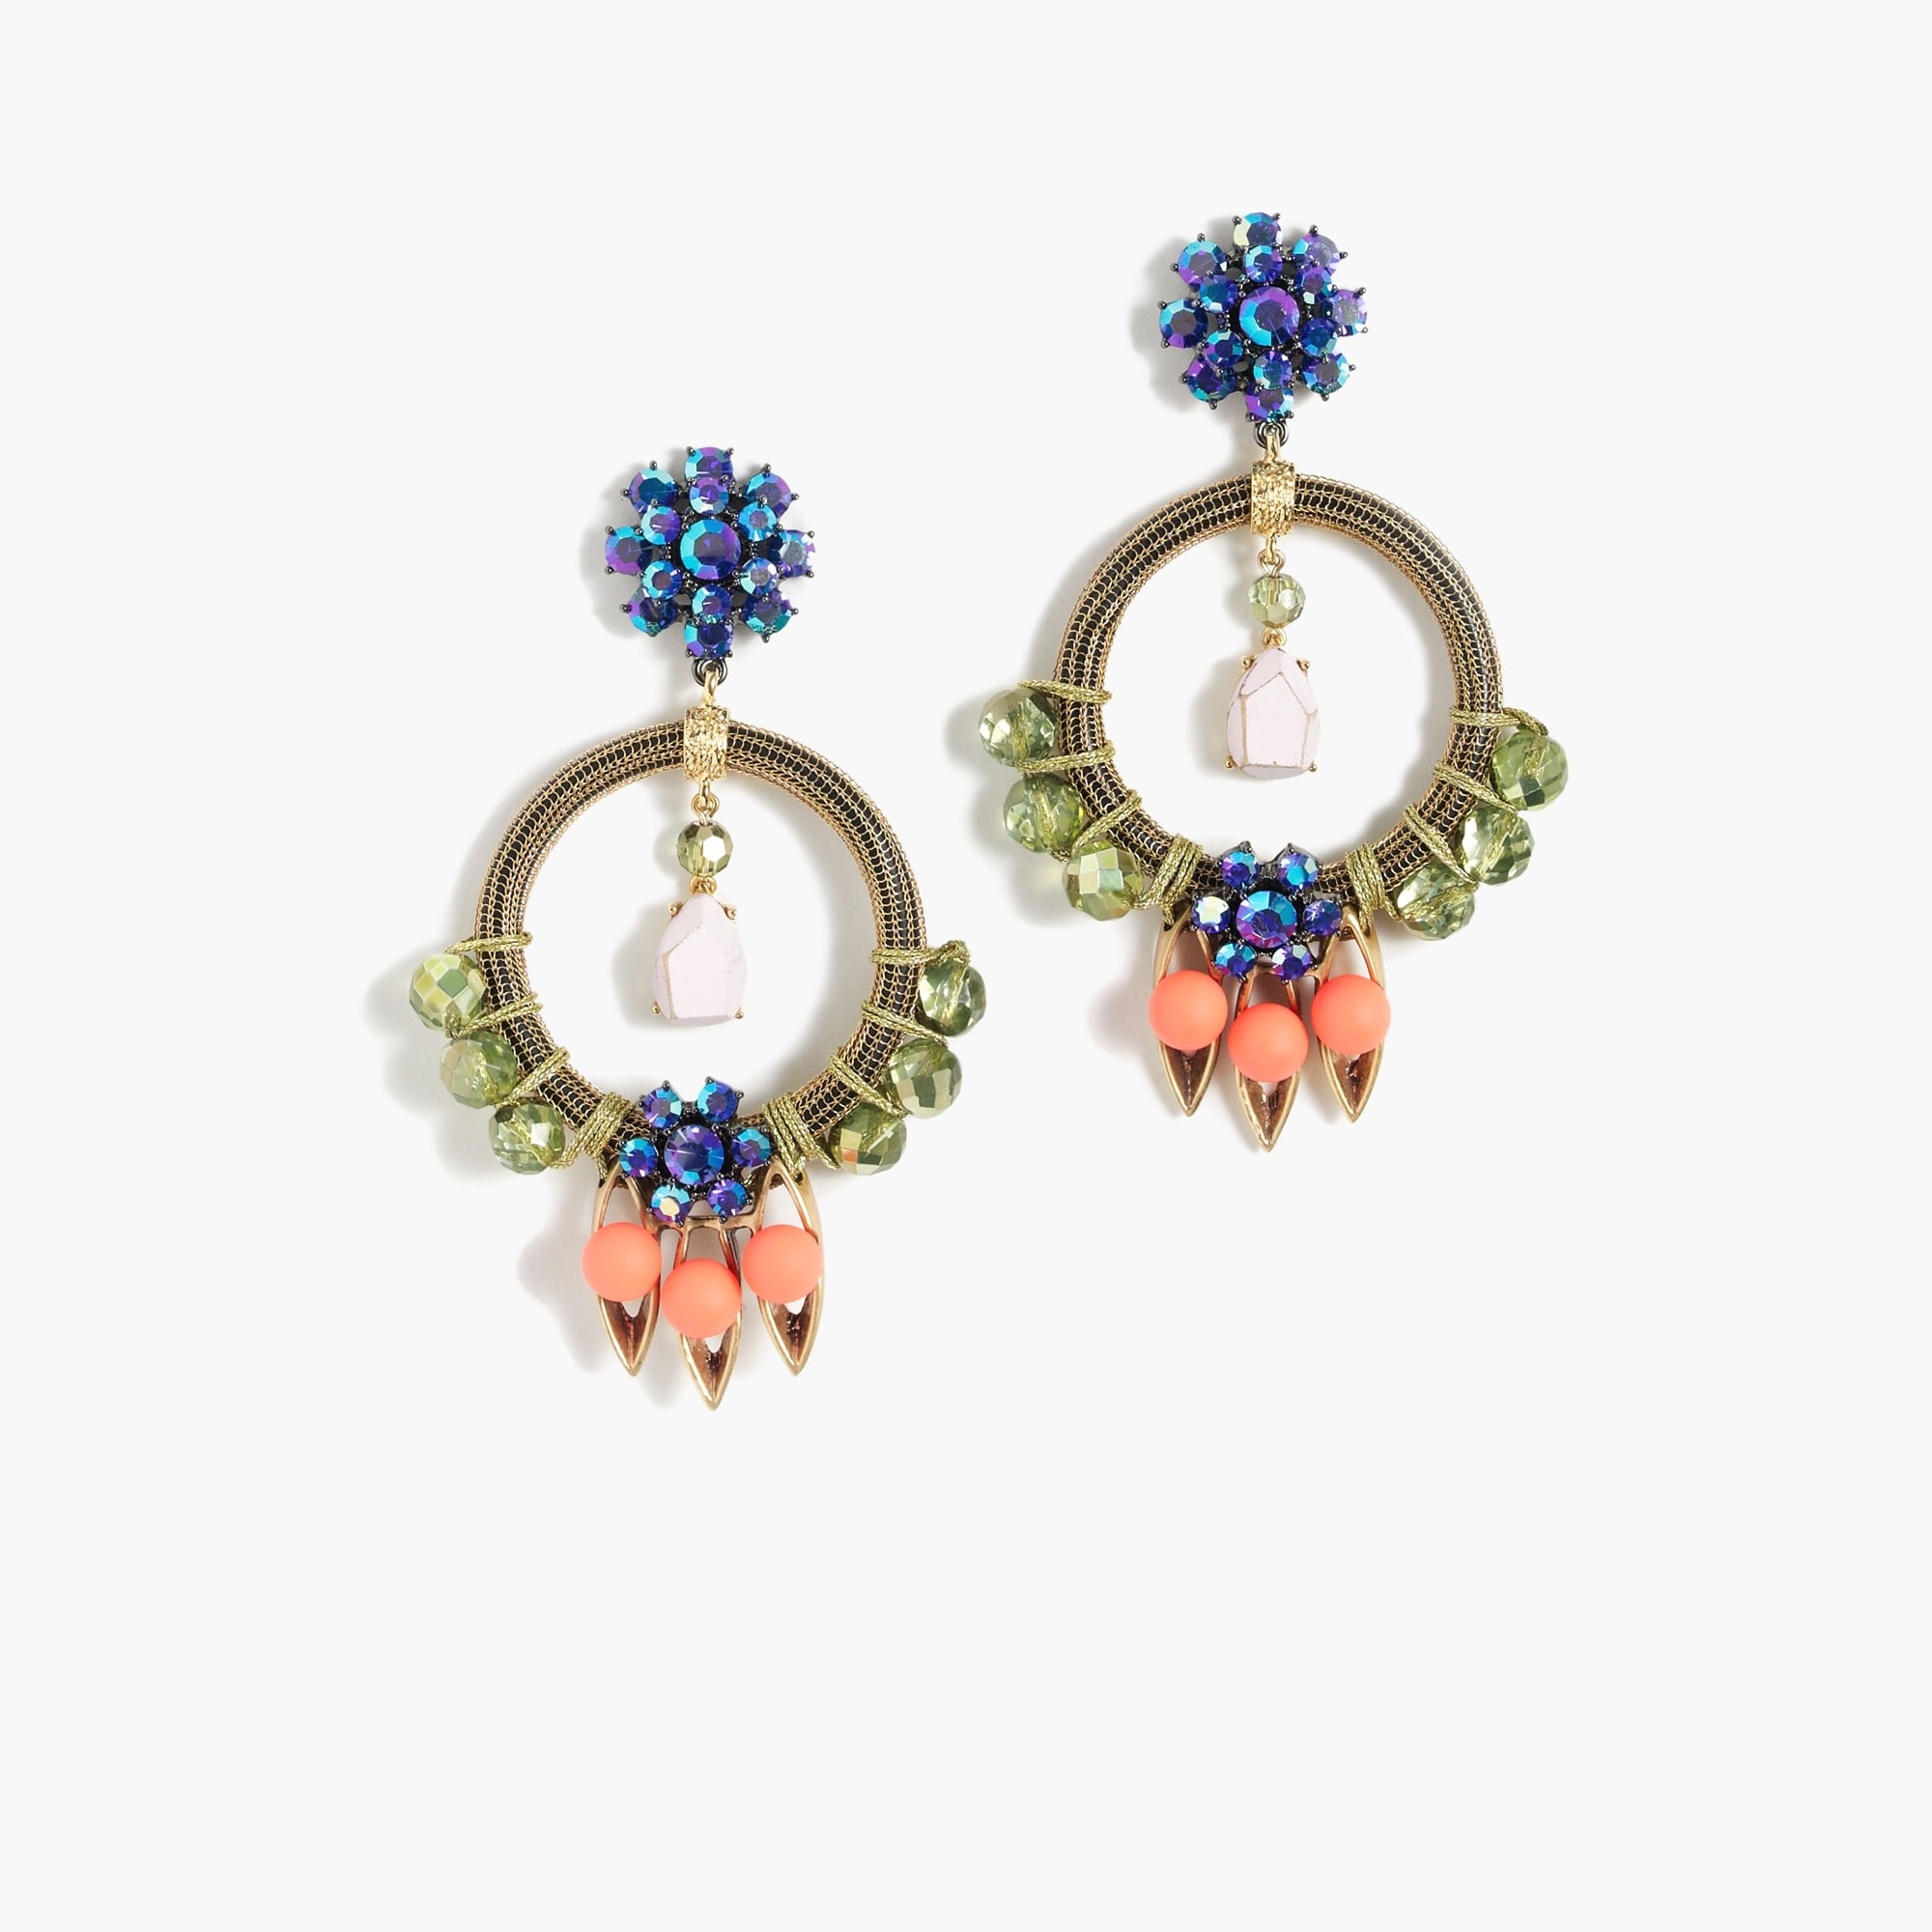 Neon pop statement earrings